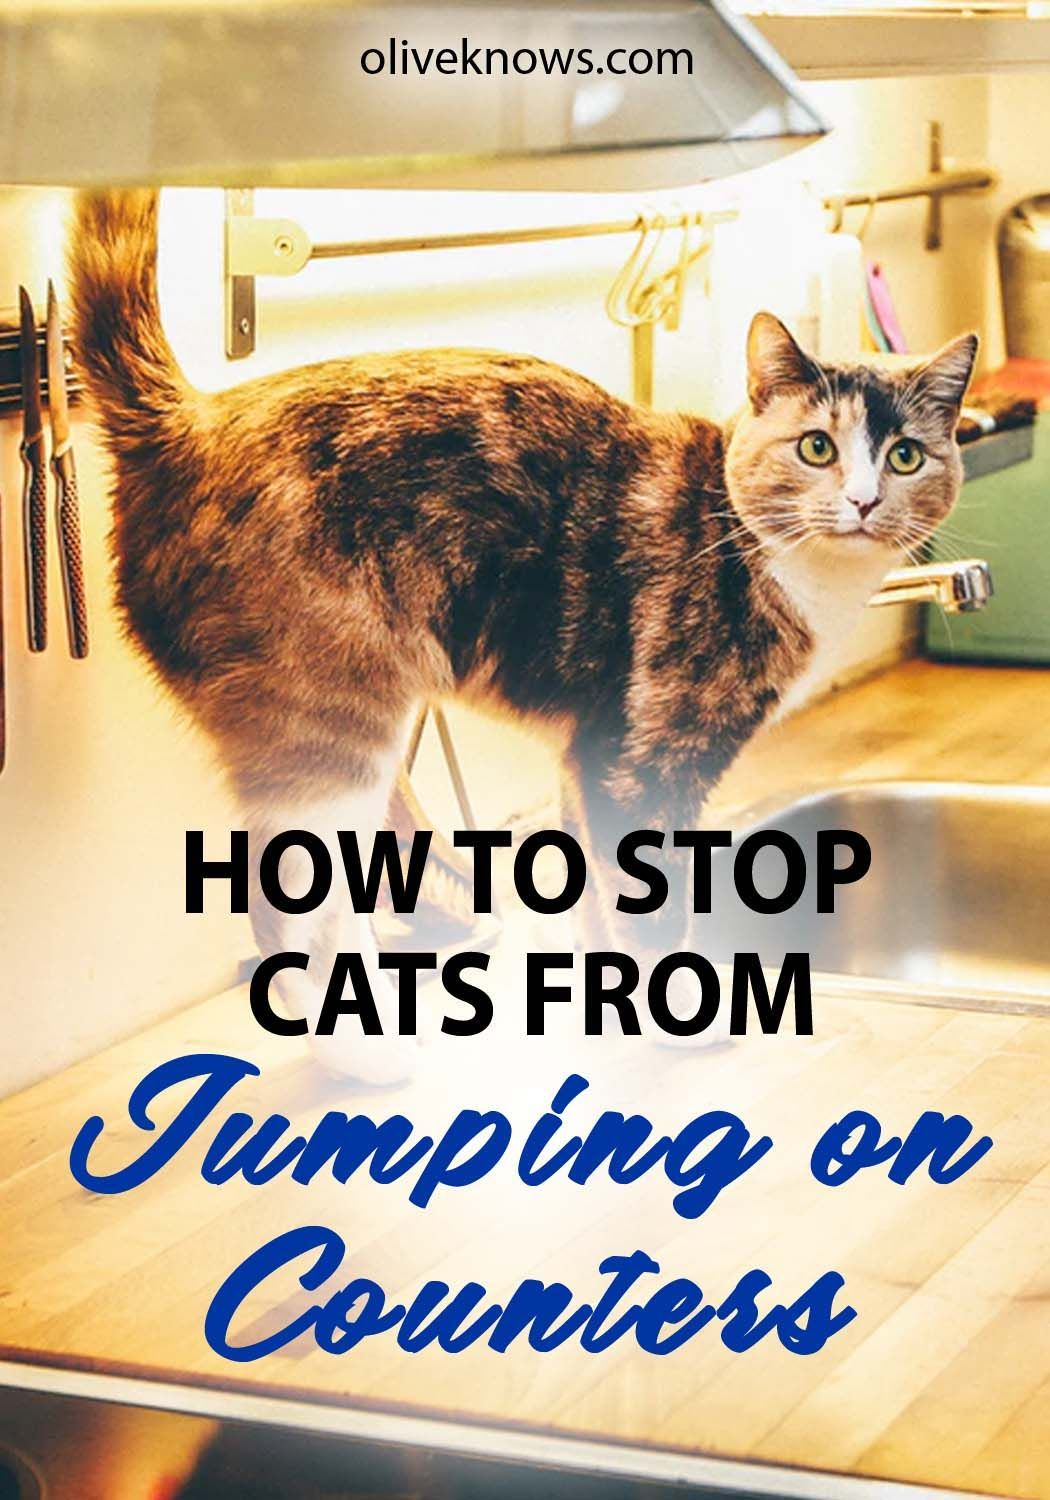 How to Stop Cats from Jumping on Kitchen Counters (Finally